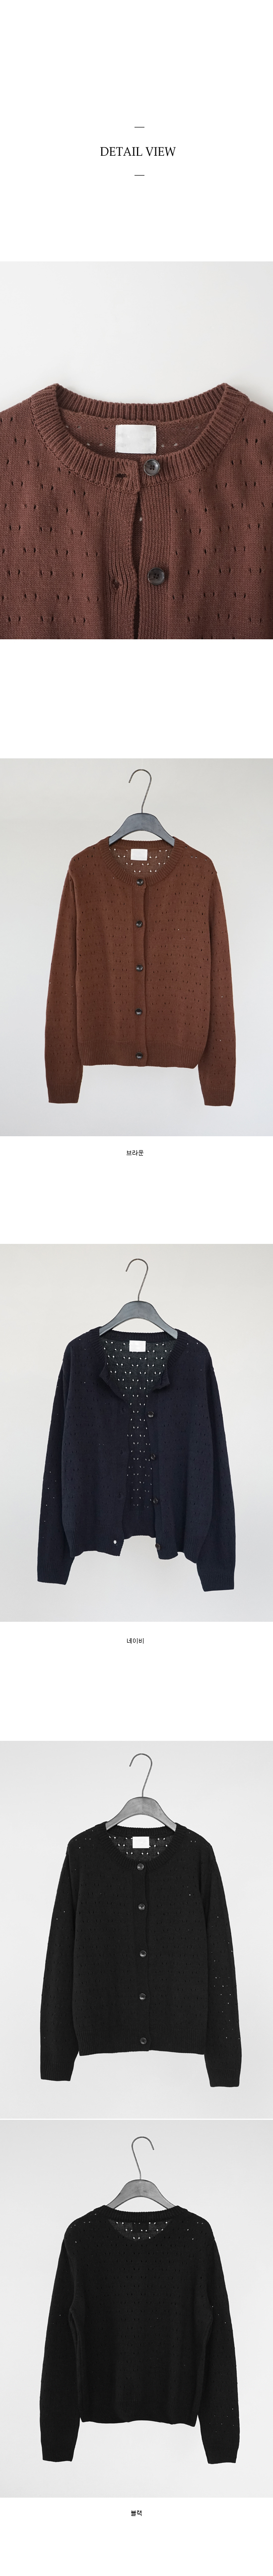 soft round punching cardigan (3colors)